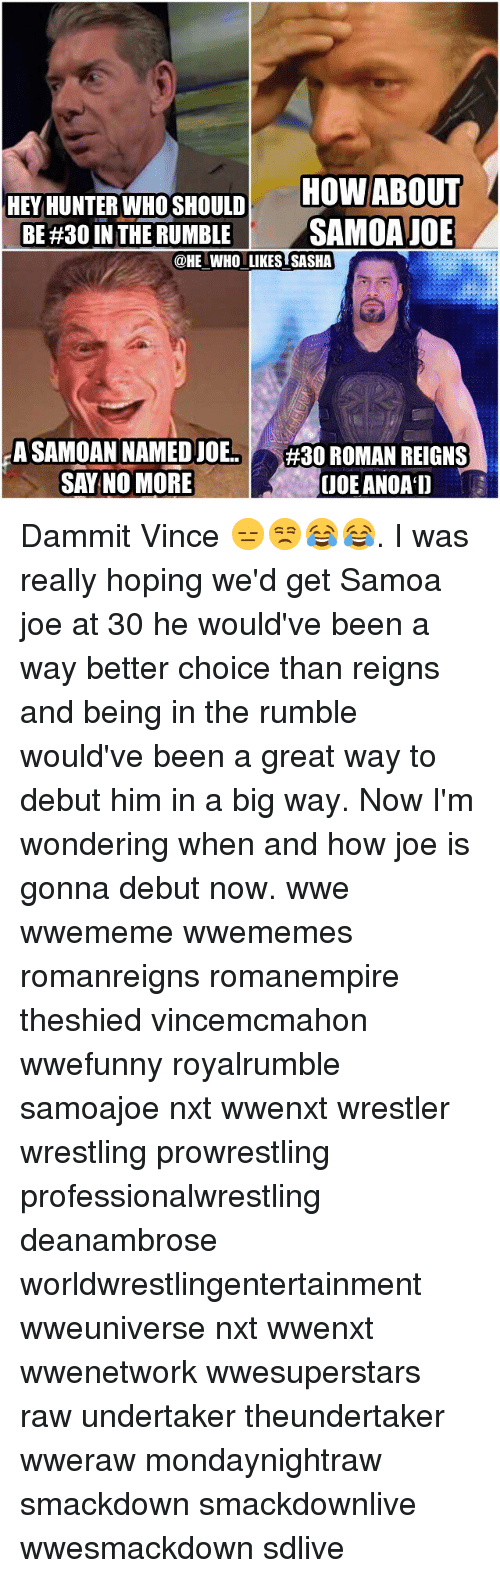 Memes, Roman Reigns, and Undertaker: HOW ABOUT  HEY HUNTER WHO SHOULD  BE #30 IN THE RUMBLE  SAMOA JOE  @HE WHO LIKES SASHA  A SAMOAN NAMEDJOE  #30 ROMAN REIGNS  SAY NO MORE  UDE ANOAD Dammit Vince 😑😒😂😂. I was really hoping we'd get Samoa joe at 30 he would've been a way better choice than reigns and being in the rumble would've been a great way to debut him in a big way. Now I'm wondering when and how joe is gonna debut now. wwe wwememe wwememes romanreigns romanempire theshied vincemcmahon wwefunny royalrumble samoajoe nxt wwenxt wrestler wrestling prowrestling professionalwrestling deanambrose worldwrestlingentertainment wweuniverse nxt wwenxt wwenetwork wwesuperstars raw undertaker theundertaker wweraw mondaynightraw smackdown smackdownlive wwesmackdown sdlive